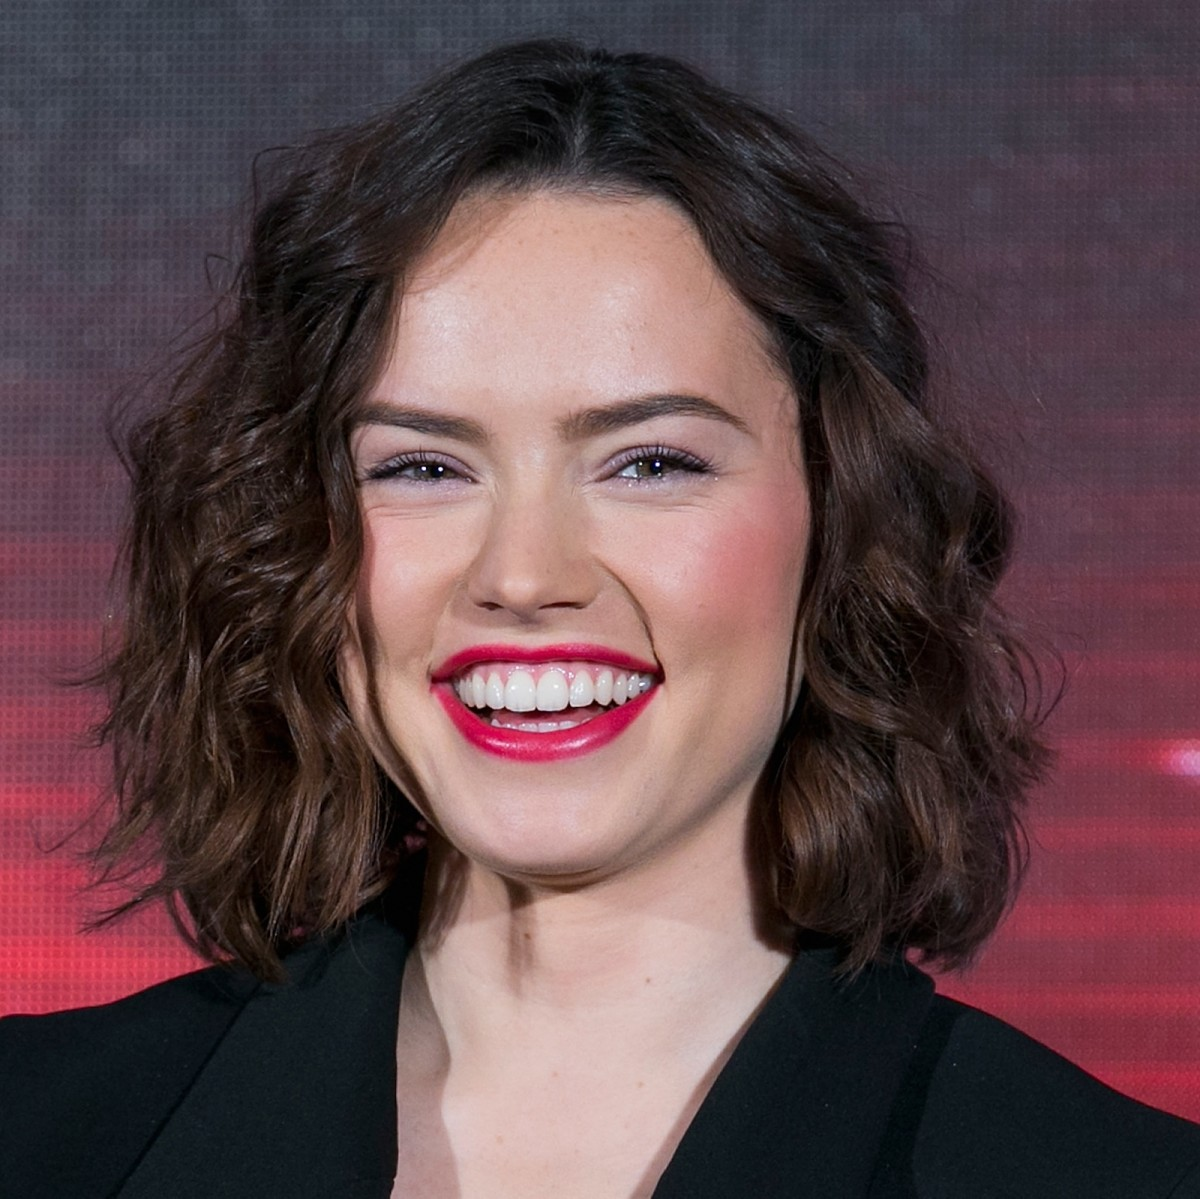 Daisy Ridley photo via Getty Images